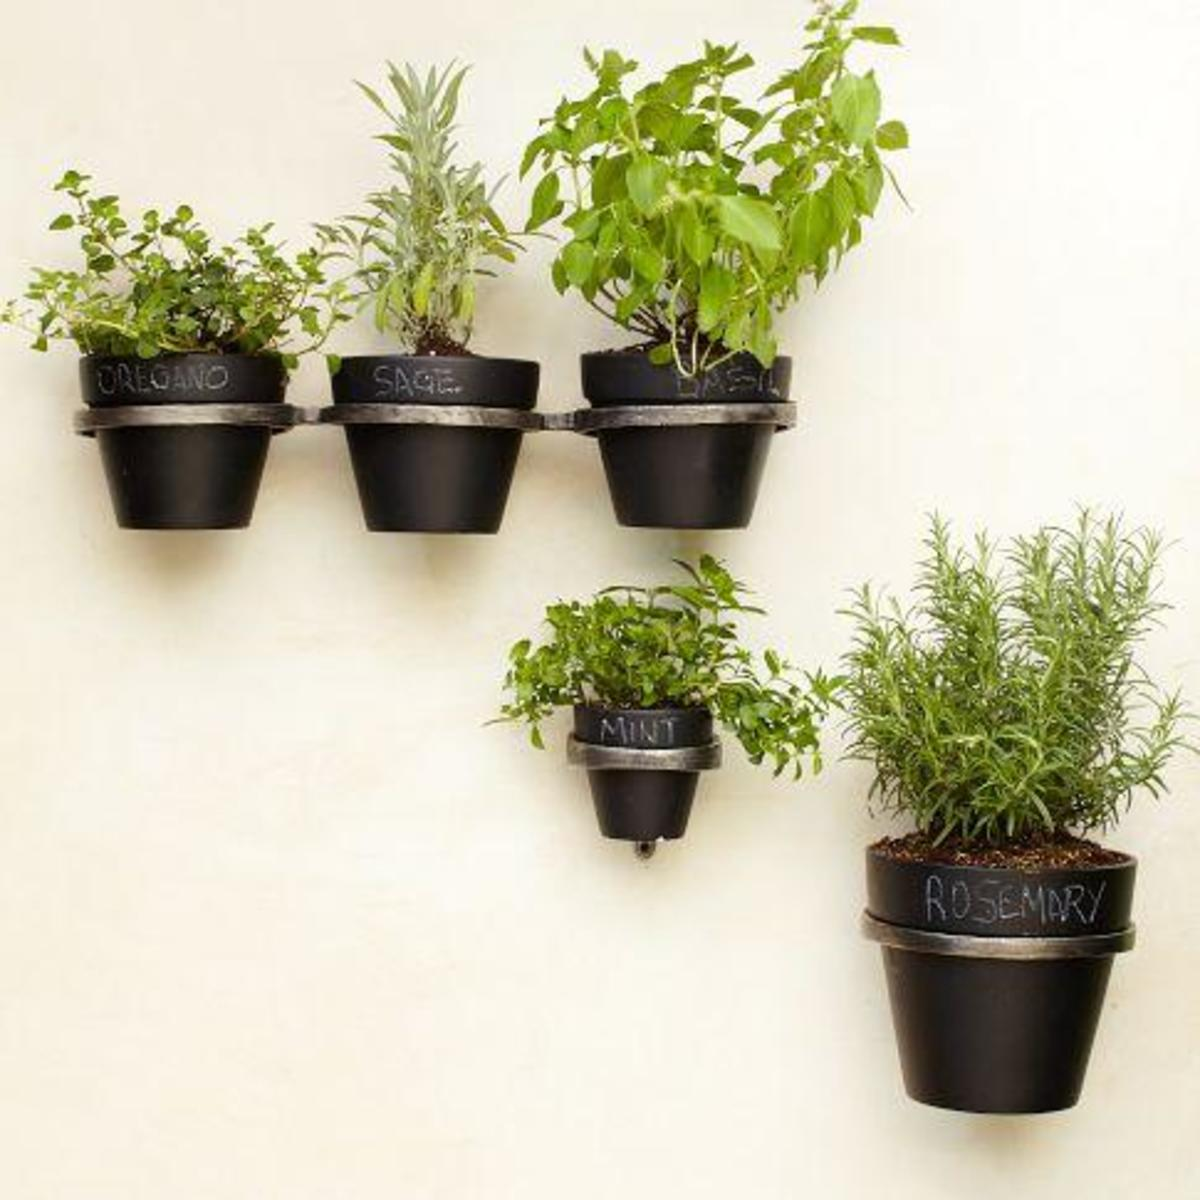 These chalkboard planter holders are stylish and perfect in the kitchen for cooking herbs.